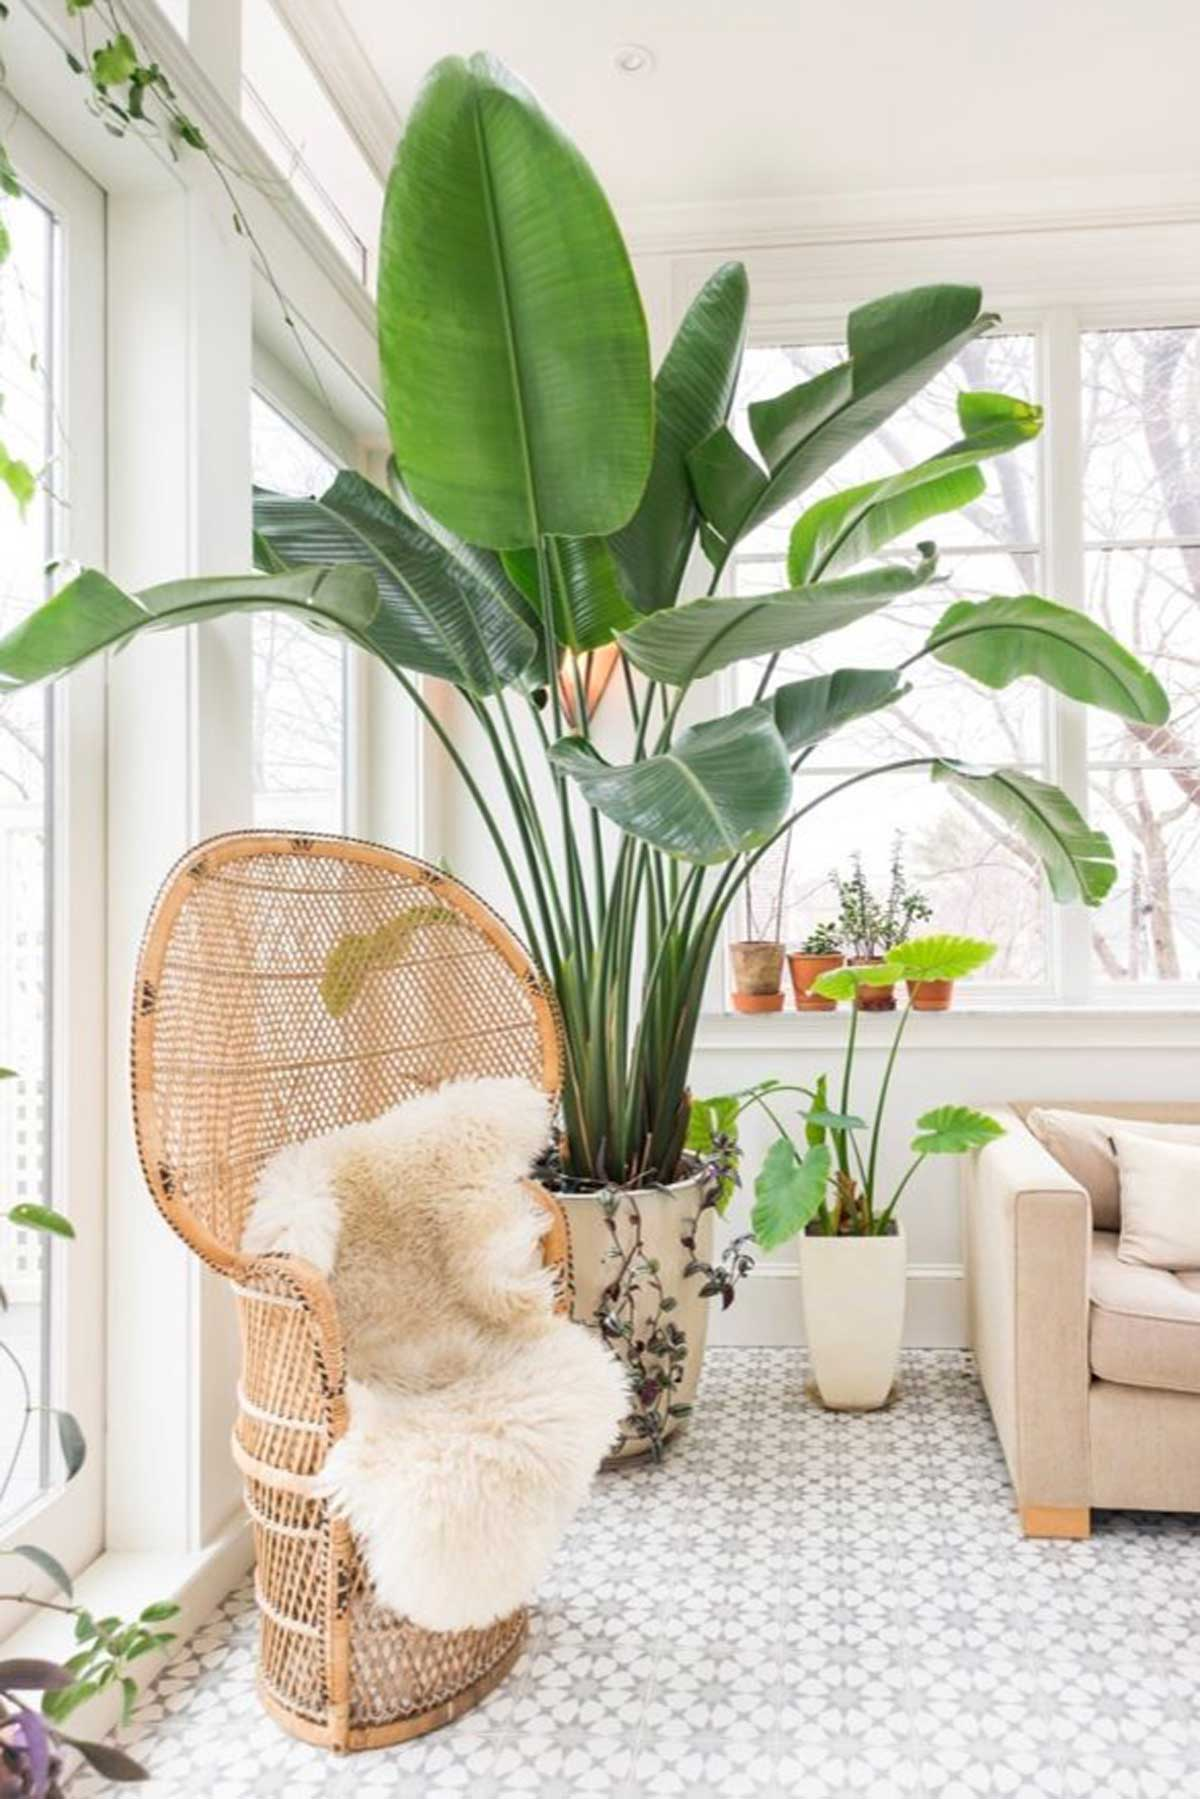 Big Plants For Living Room Indoor Plants A Complete Guide On The Best Indoor Plants